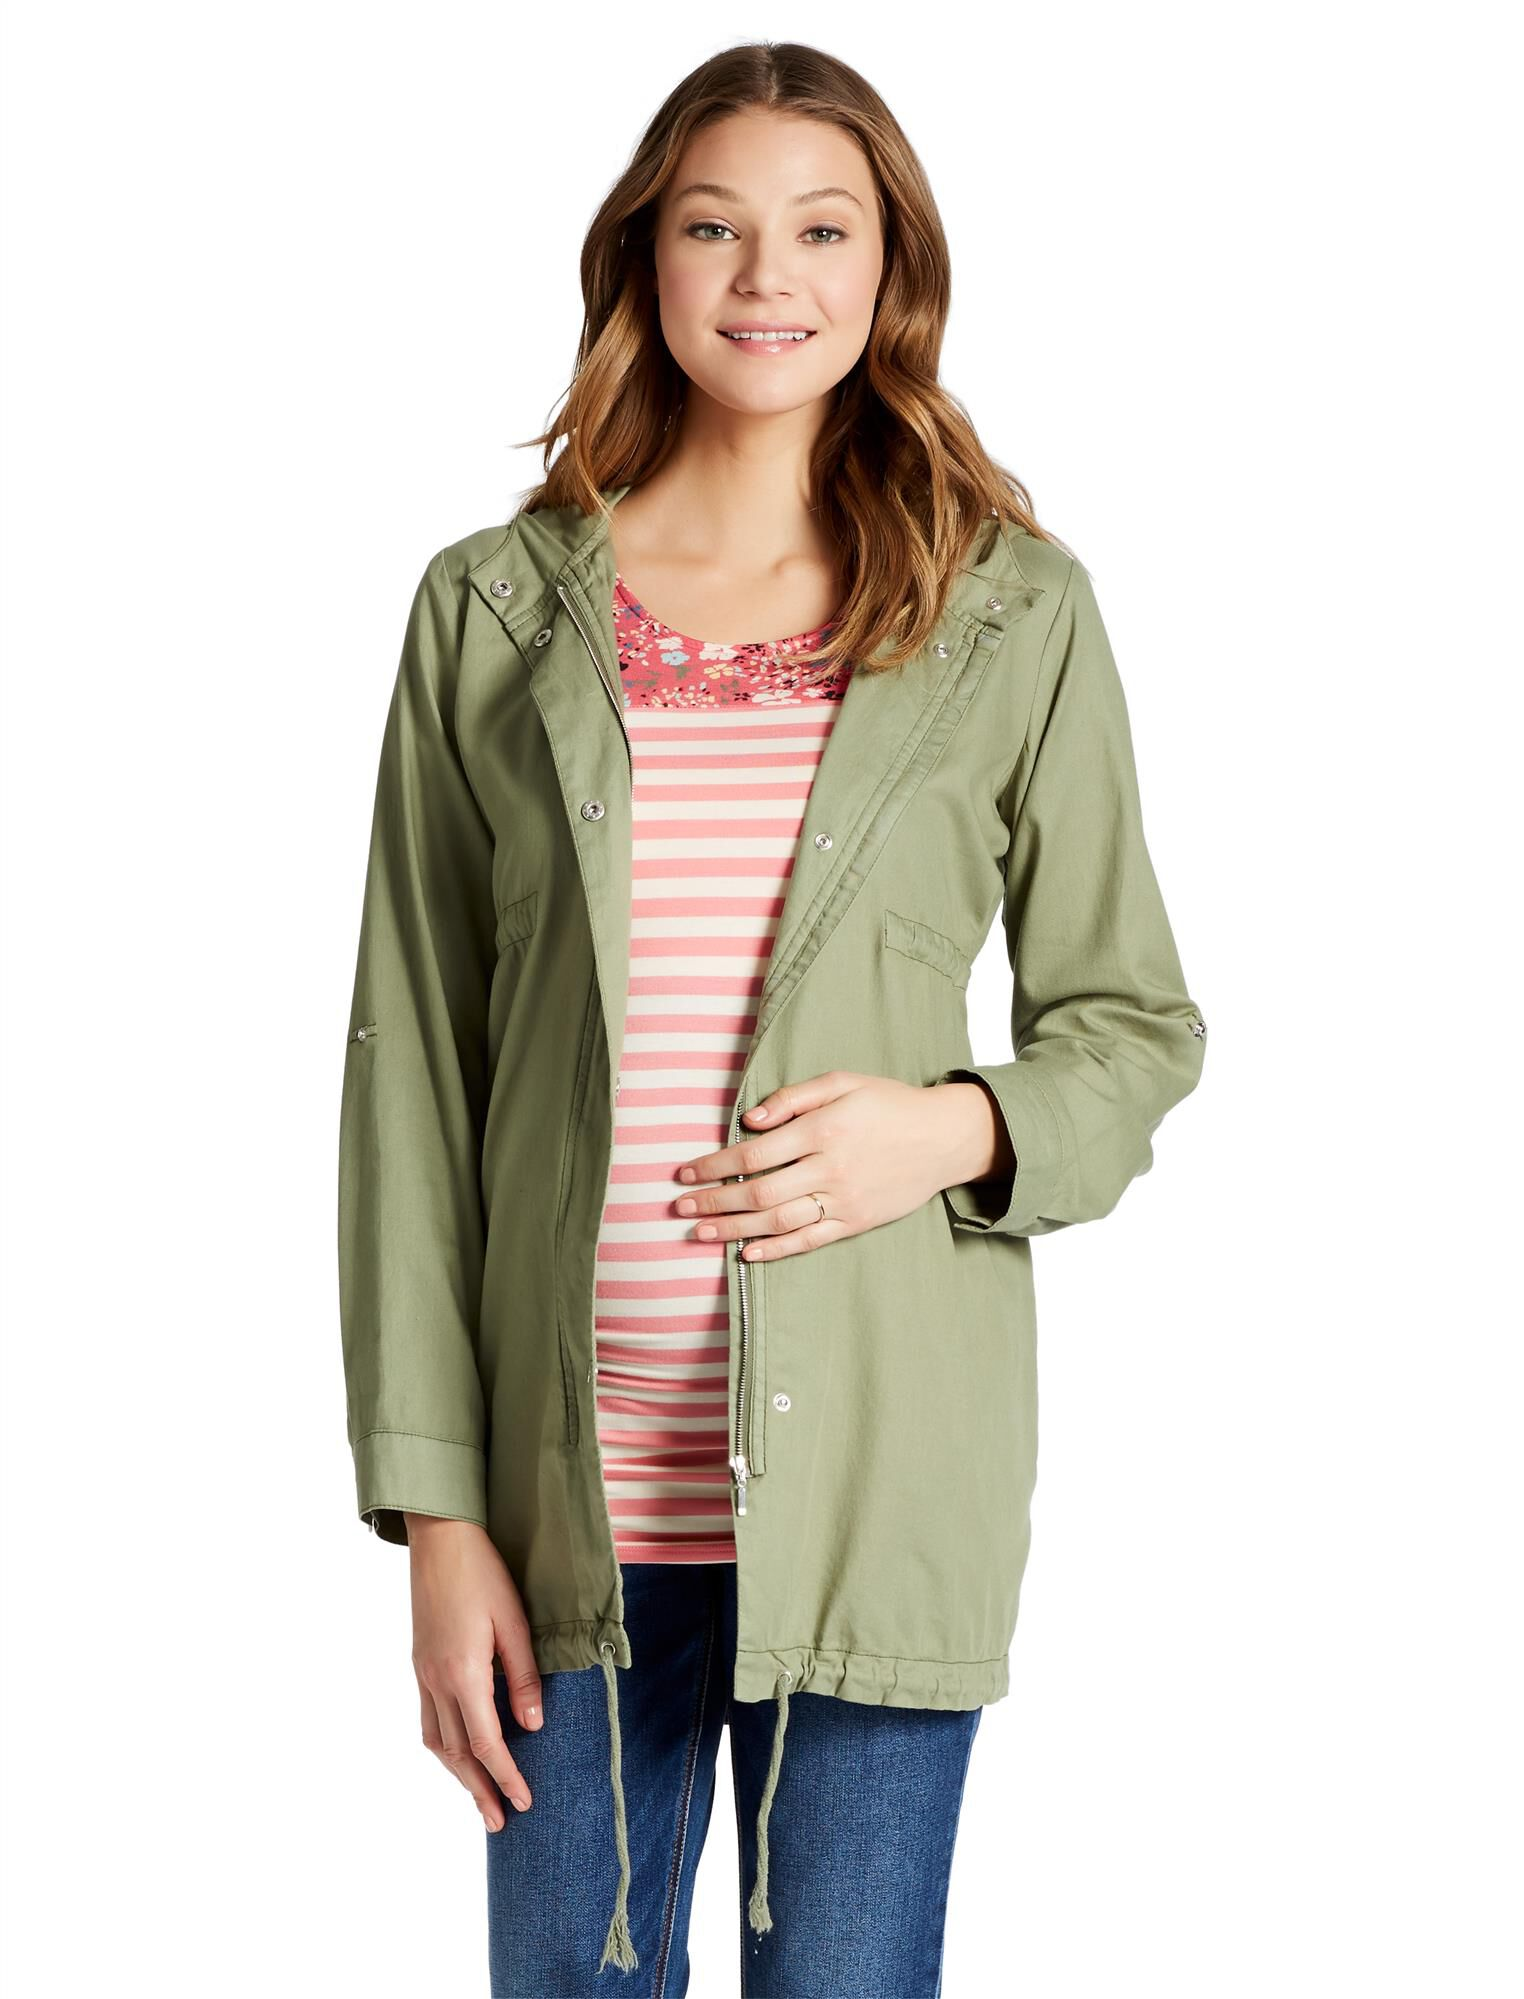 Jessica Simpson Super Soft Twill Maternity Jacket